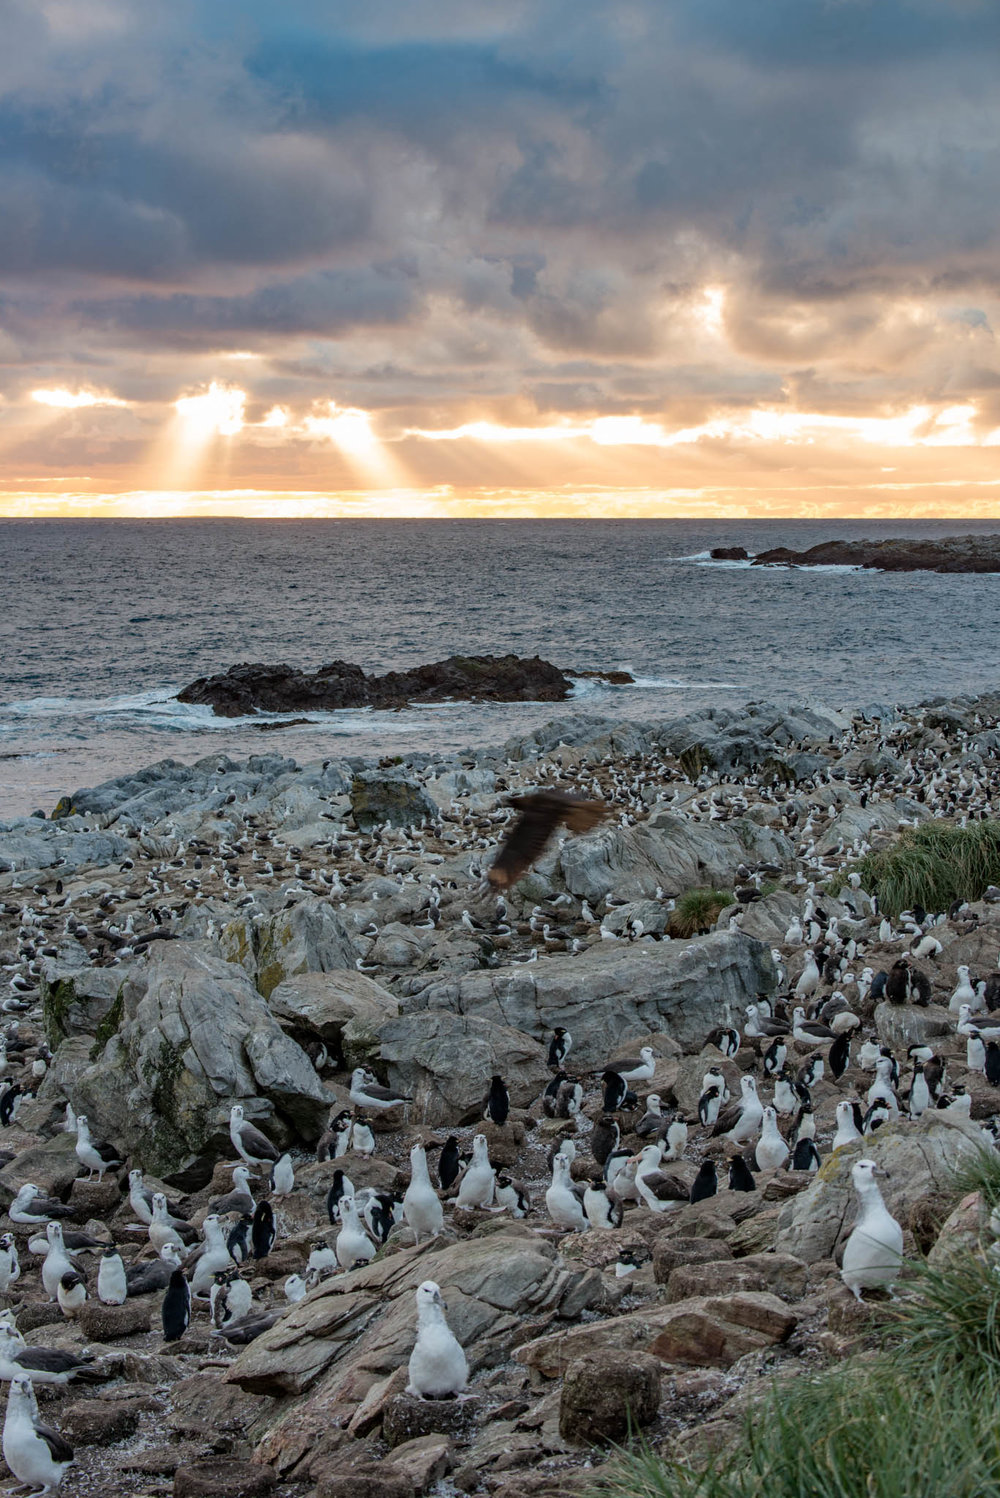 Black Browed Albatross and Rockhopper Penguin Colony